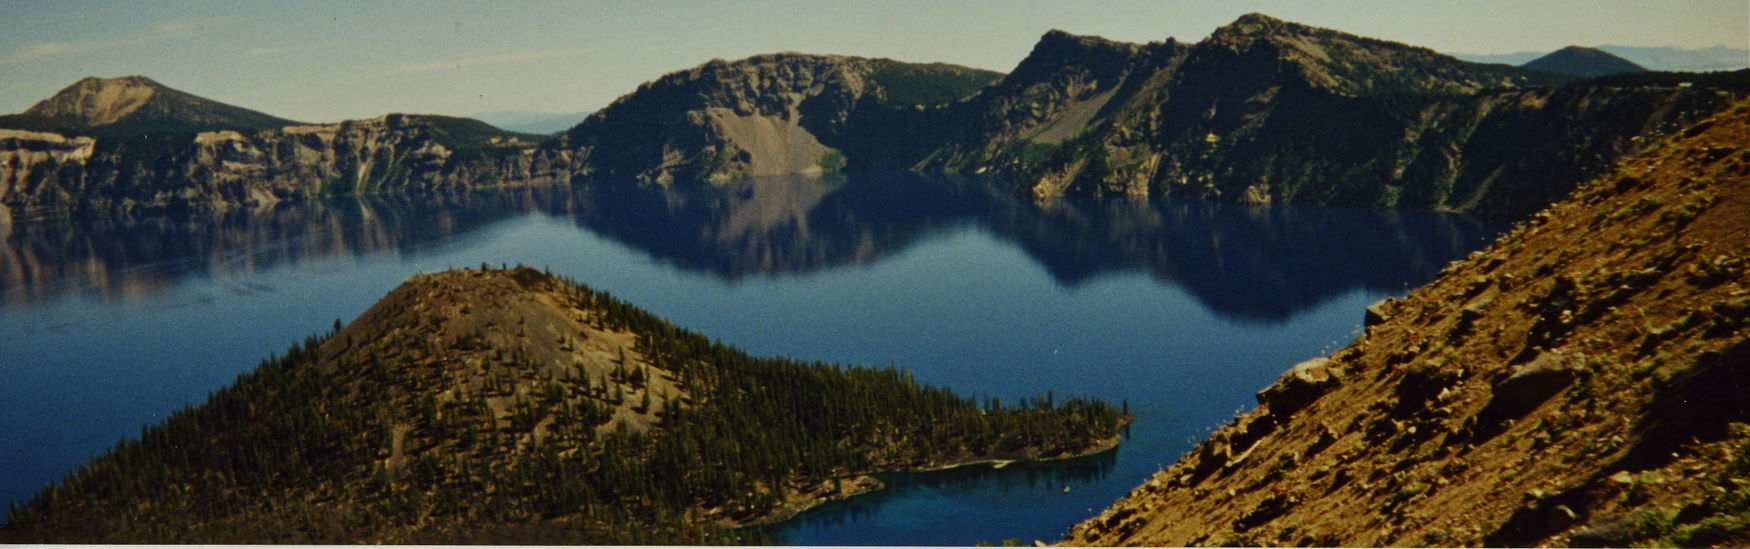 The Great Outdoors - 2016 EyeEm Awards Crater Lake National Park Finding New Frontiers Flying High The Great Outdoors - 2017 EyeEm Awards BYOPaper! The Week On EyeEm Been There. Done That. Perspectives On Nature